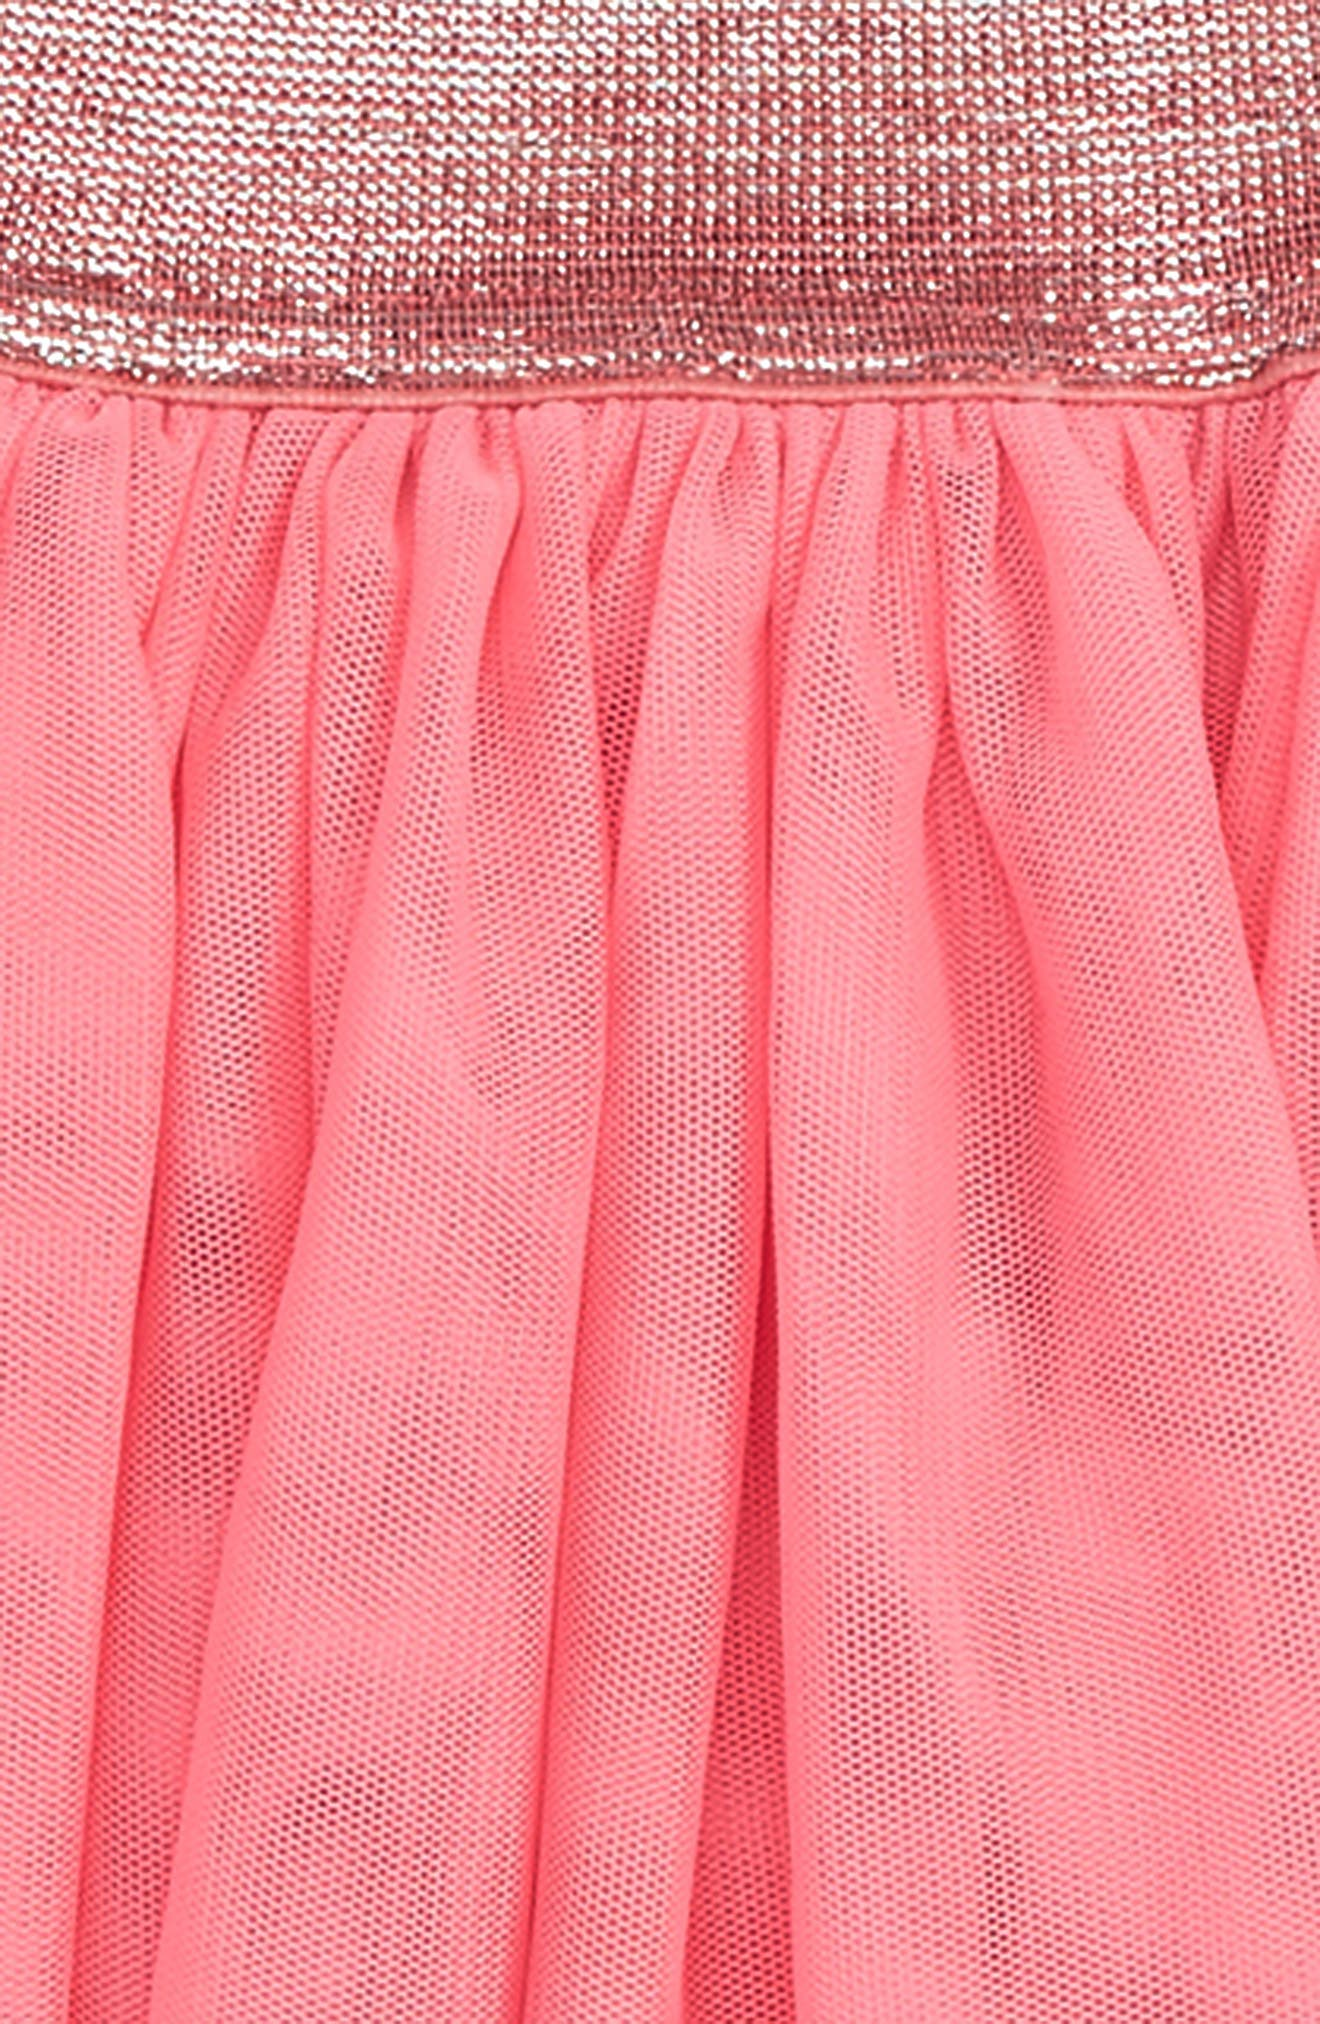 Alternate Image 3  - Tucker + Tate Tulle Skirt (Toddler Girls, Little Girls & Big Girls)